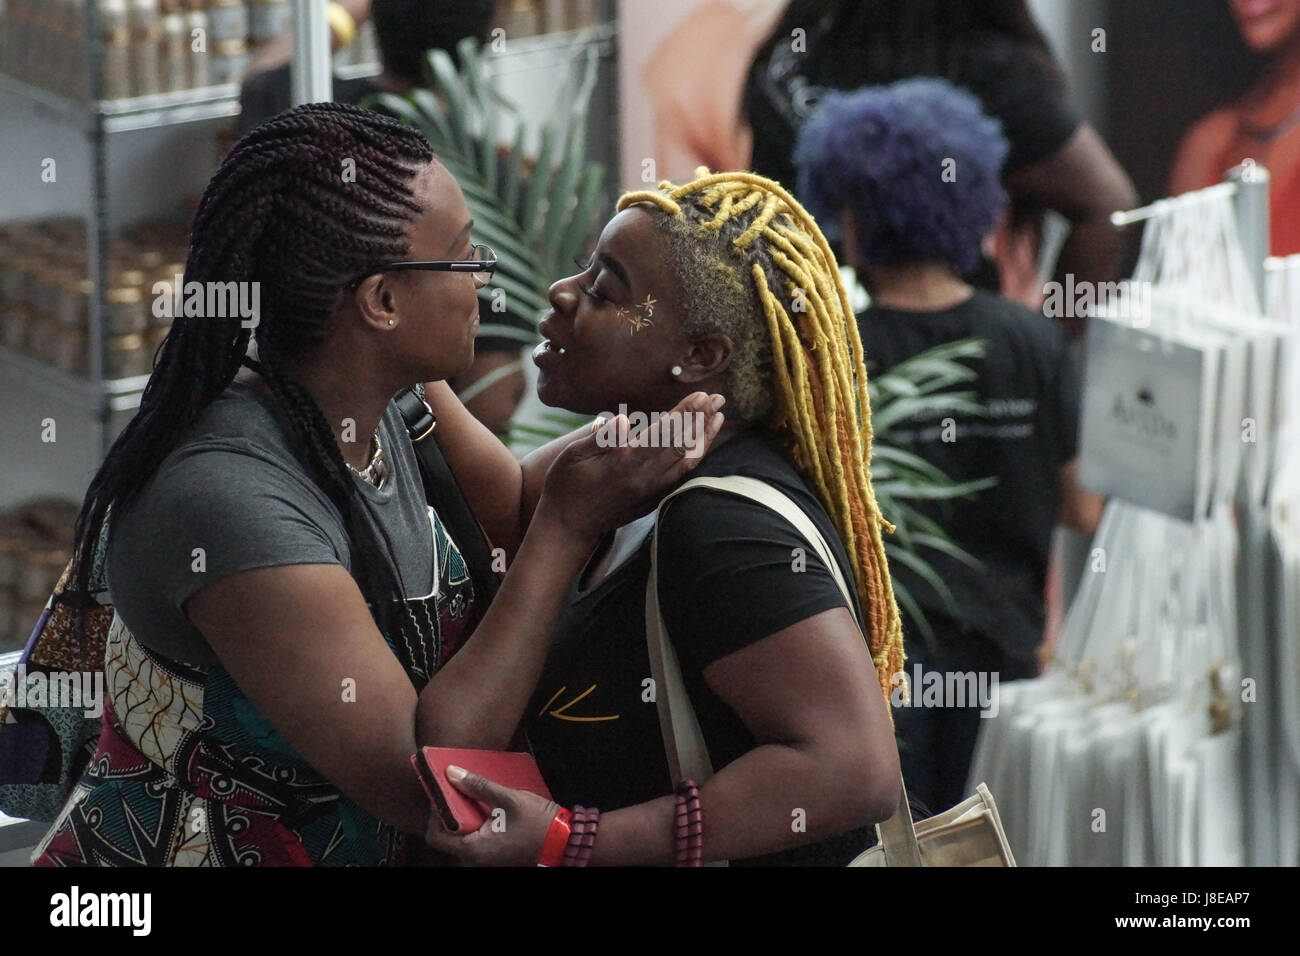 London, England 28 MAY  2017. AFRO HAIR & BEAUTY LIVE 28 MAY  2017.A chance encounter for two old friends.  - Stock Image